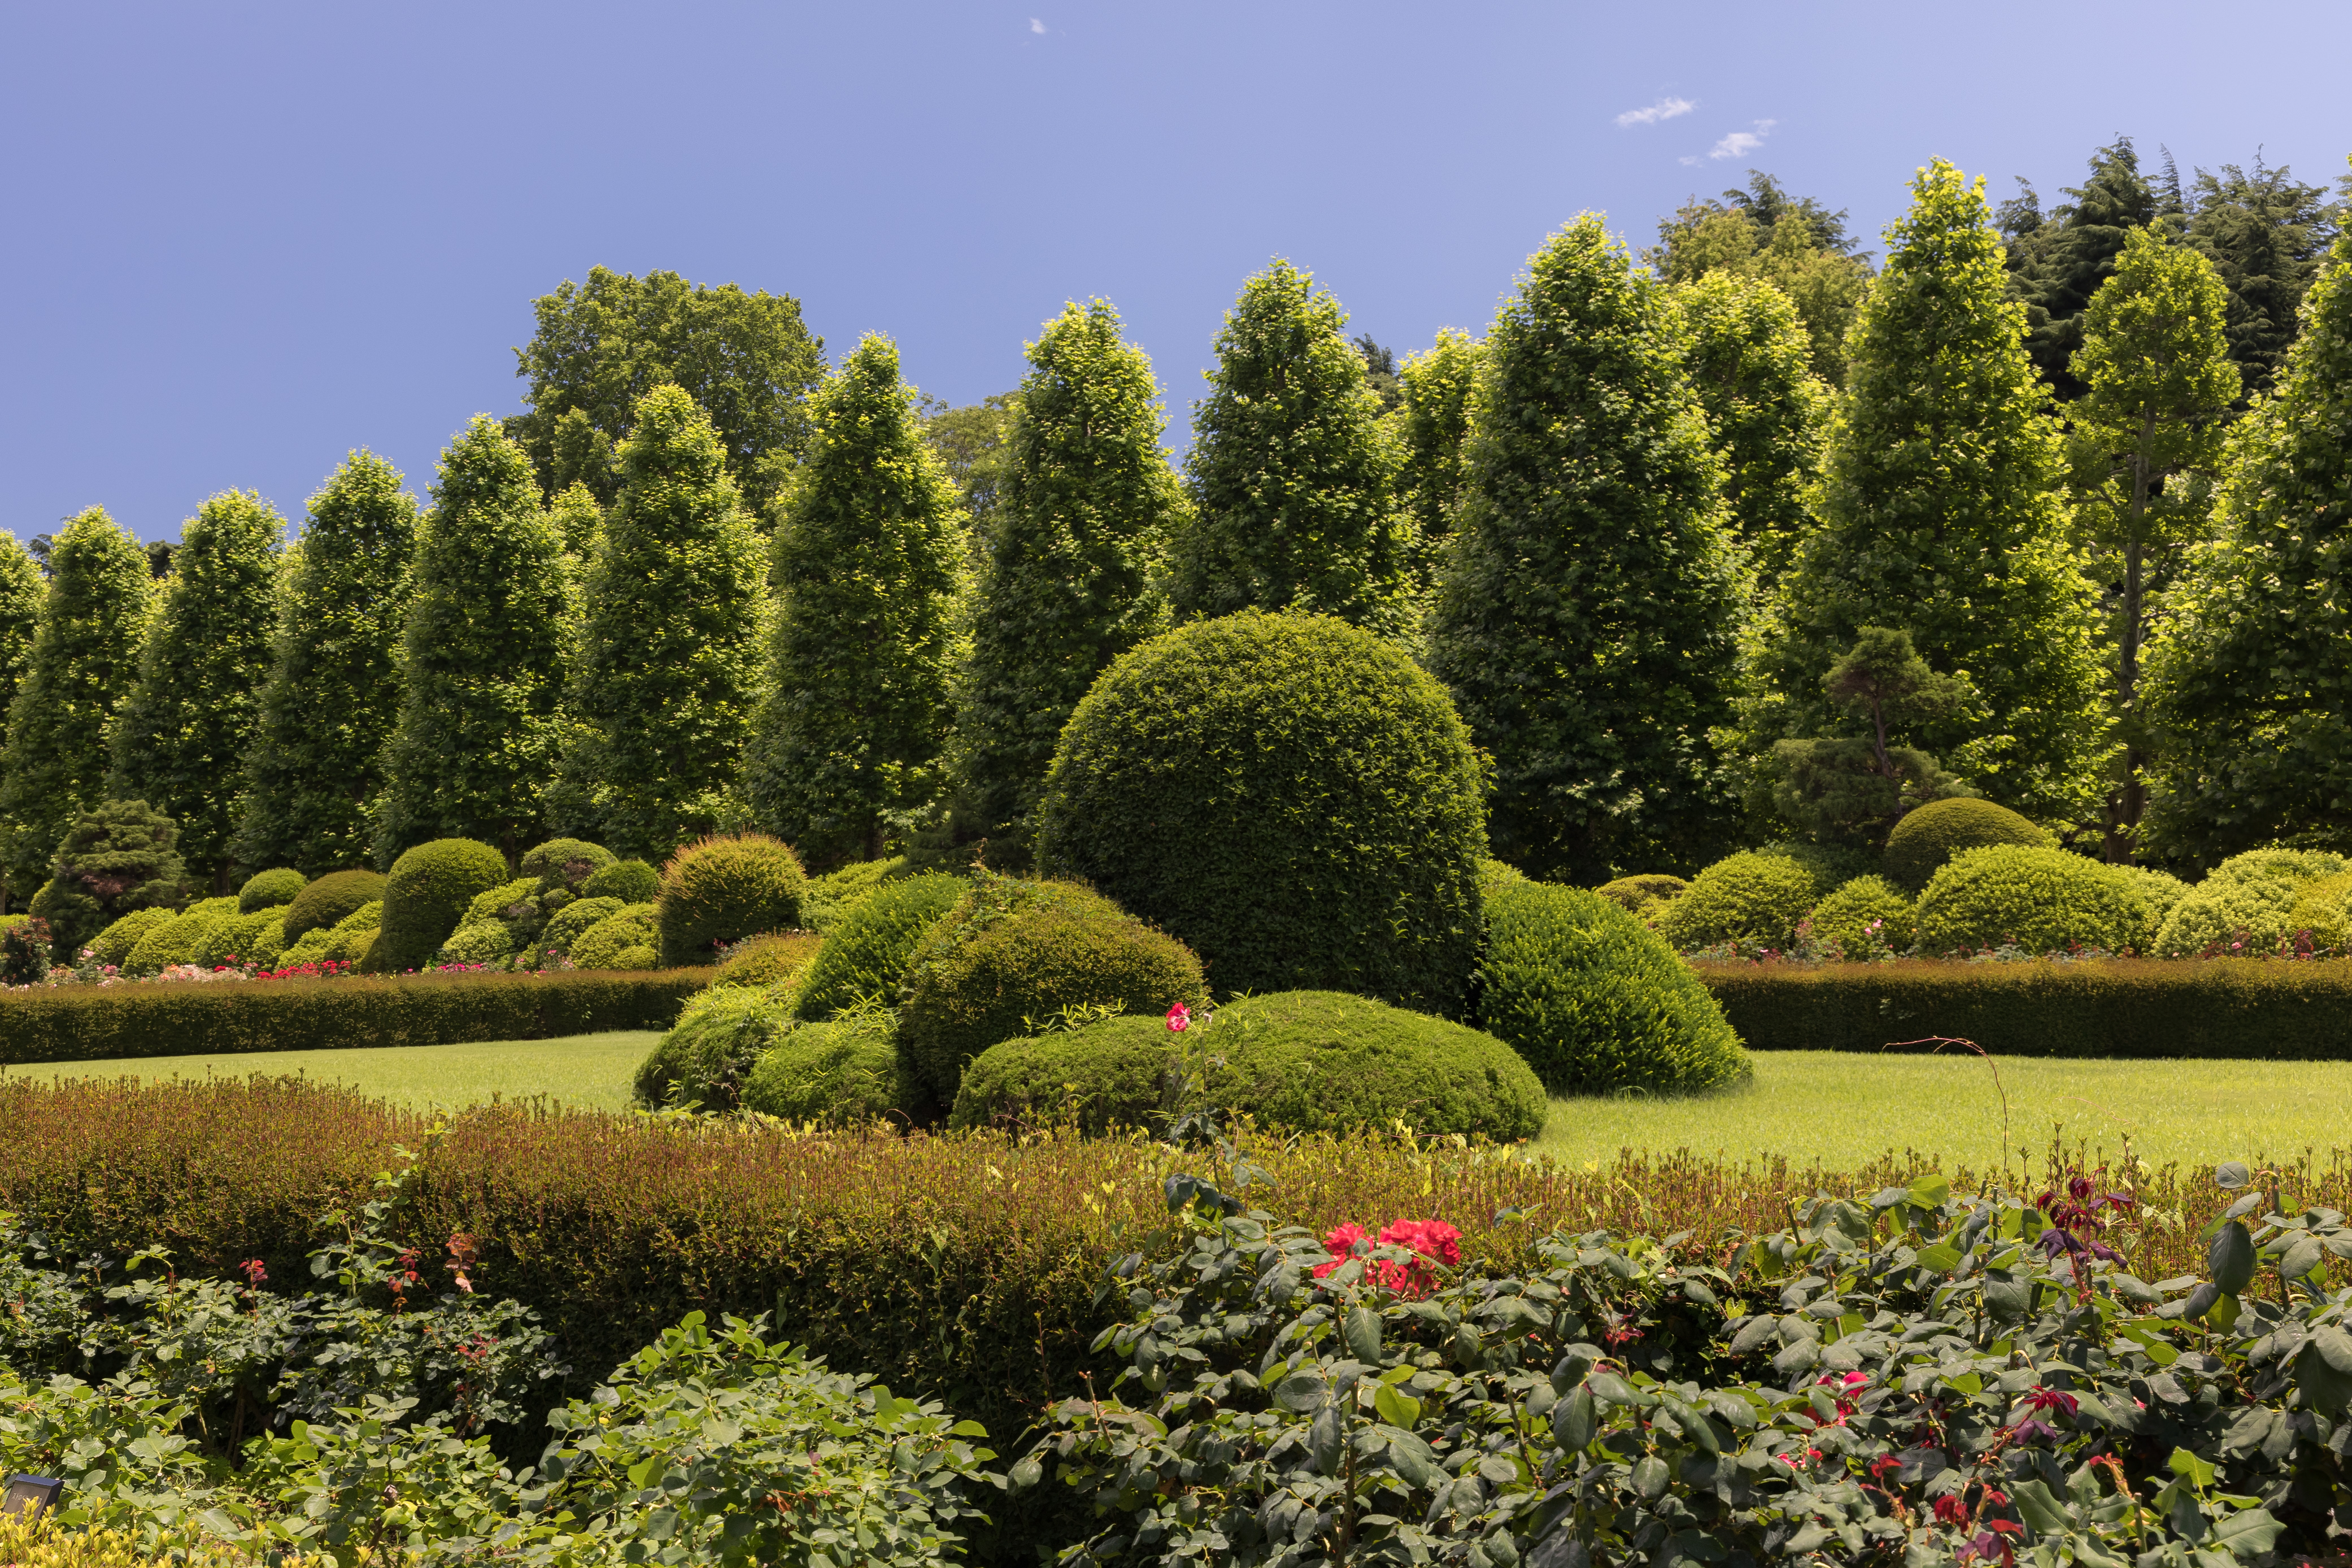 File Green Trees And Shrubs In Shinjuku Gyoen National Garden Tokyo Japan A Sunny Day With Blue Sky Jpg Wikimedia Commons